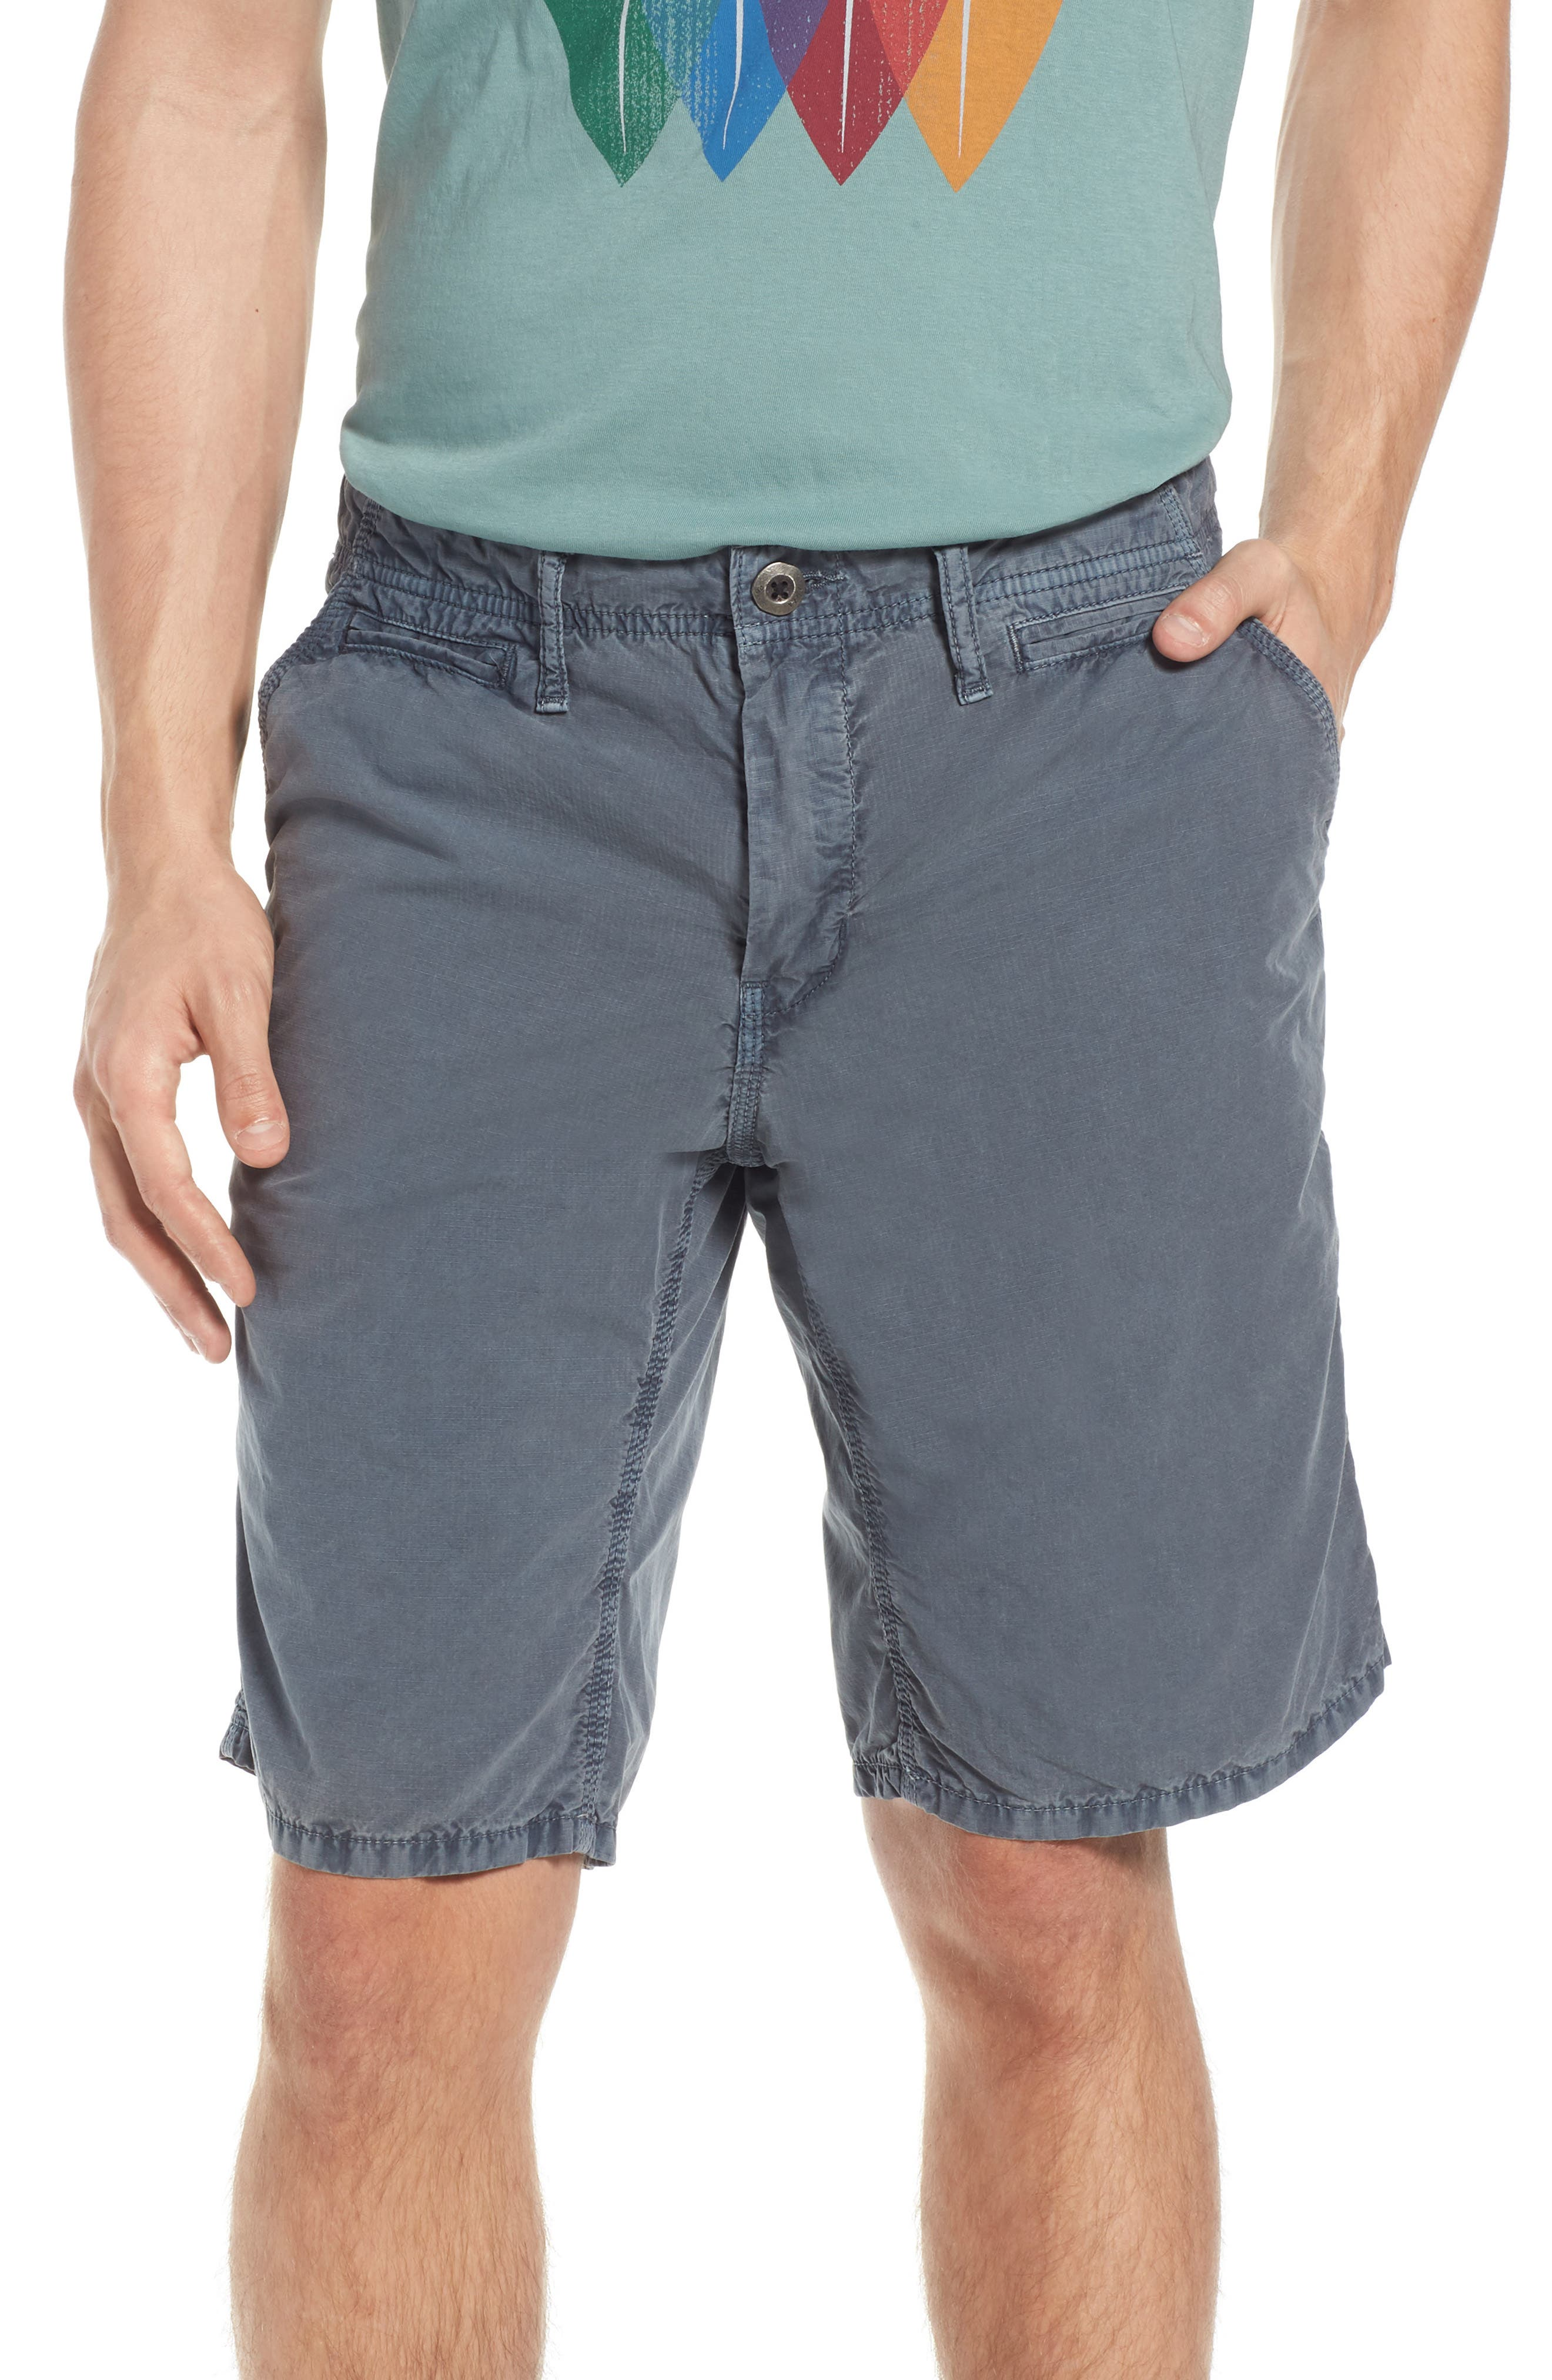 Palm Springs Shorts,                         Main,                         color,